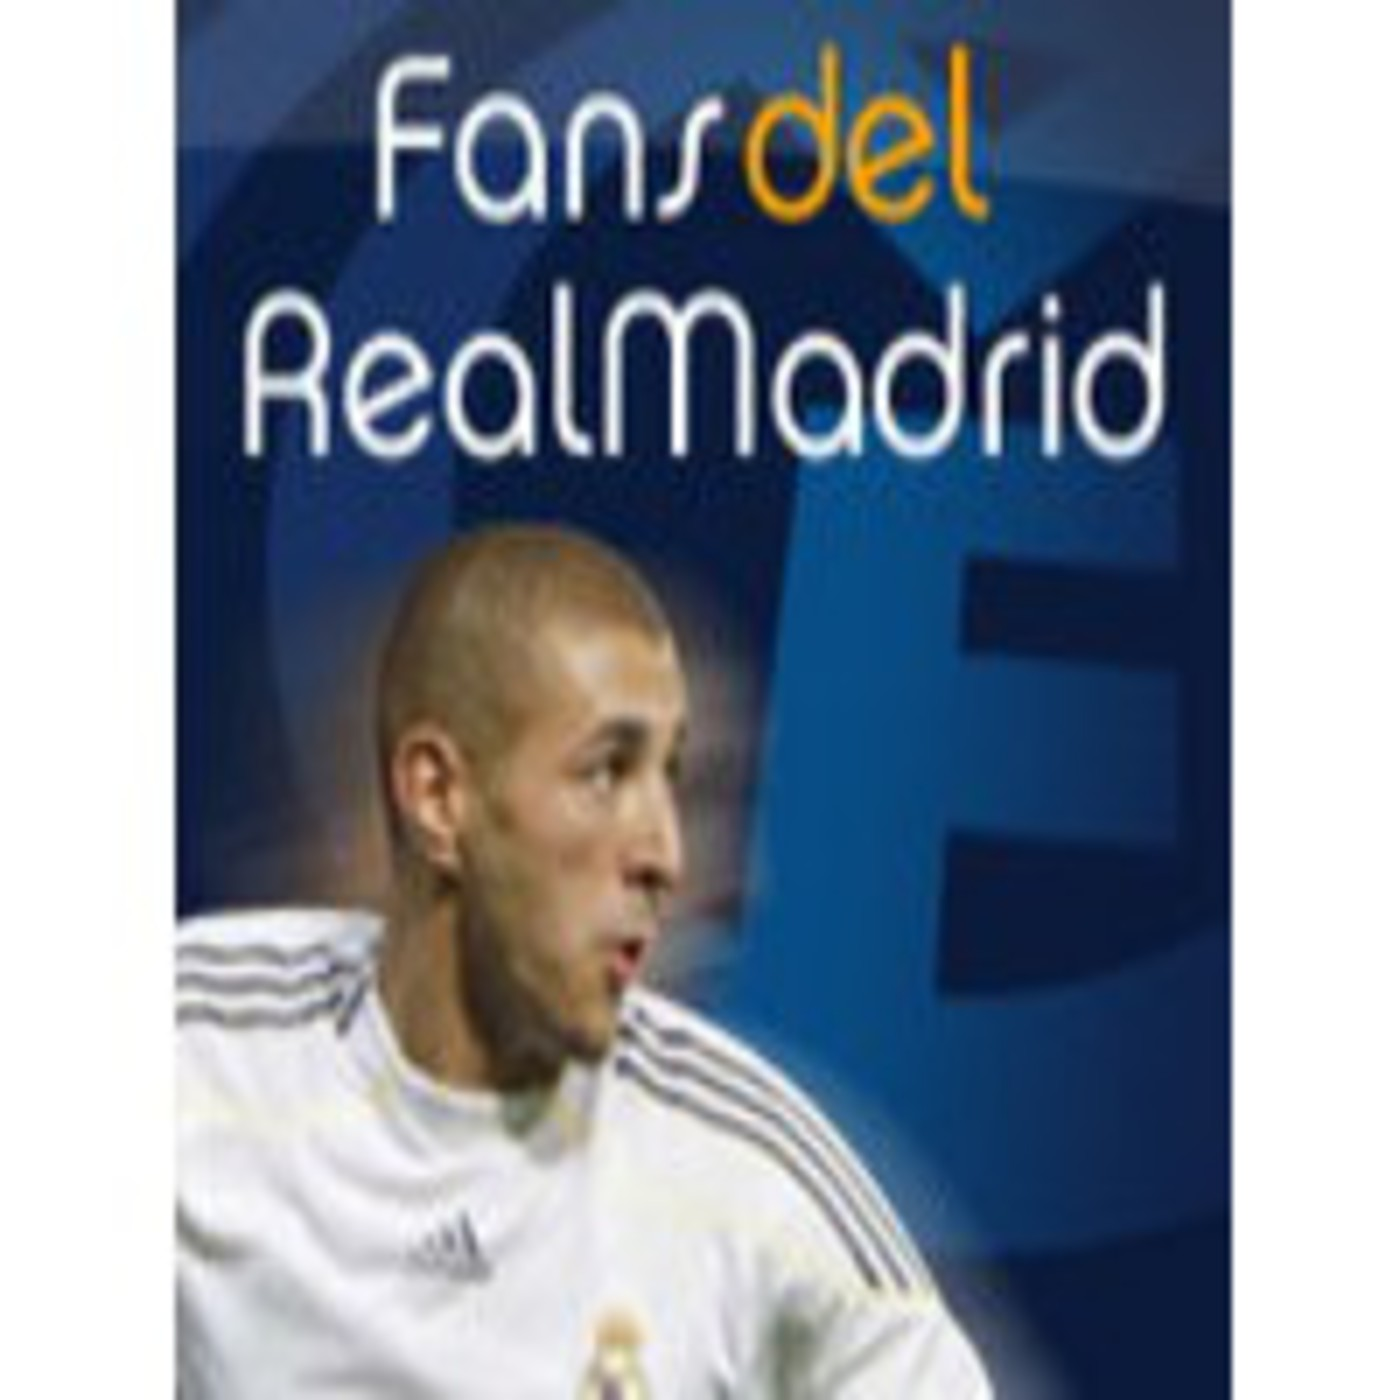 <![CDATA[Podcast Fans del Real Madrid]]>